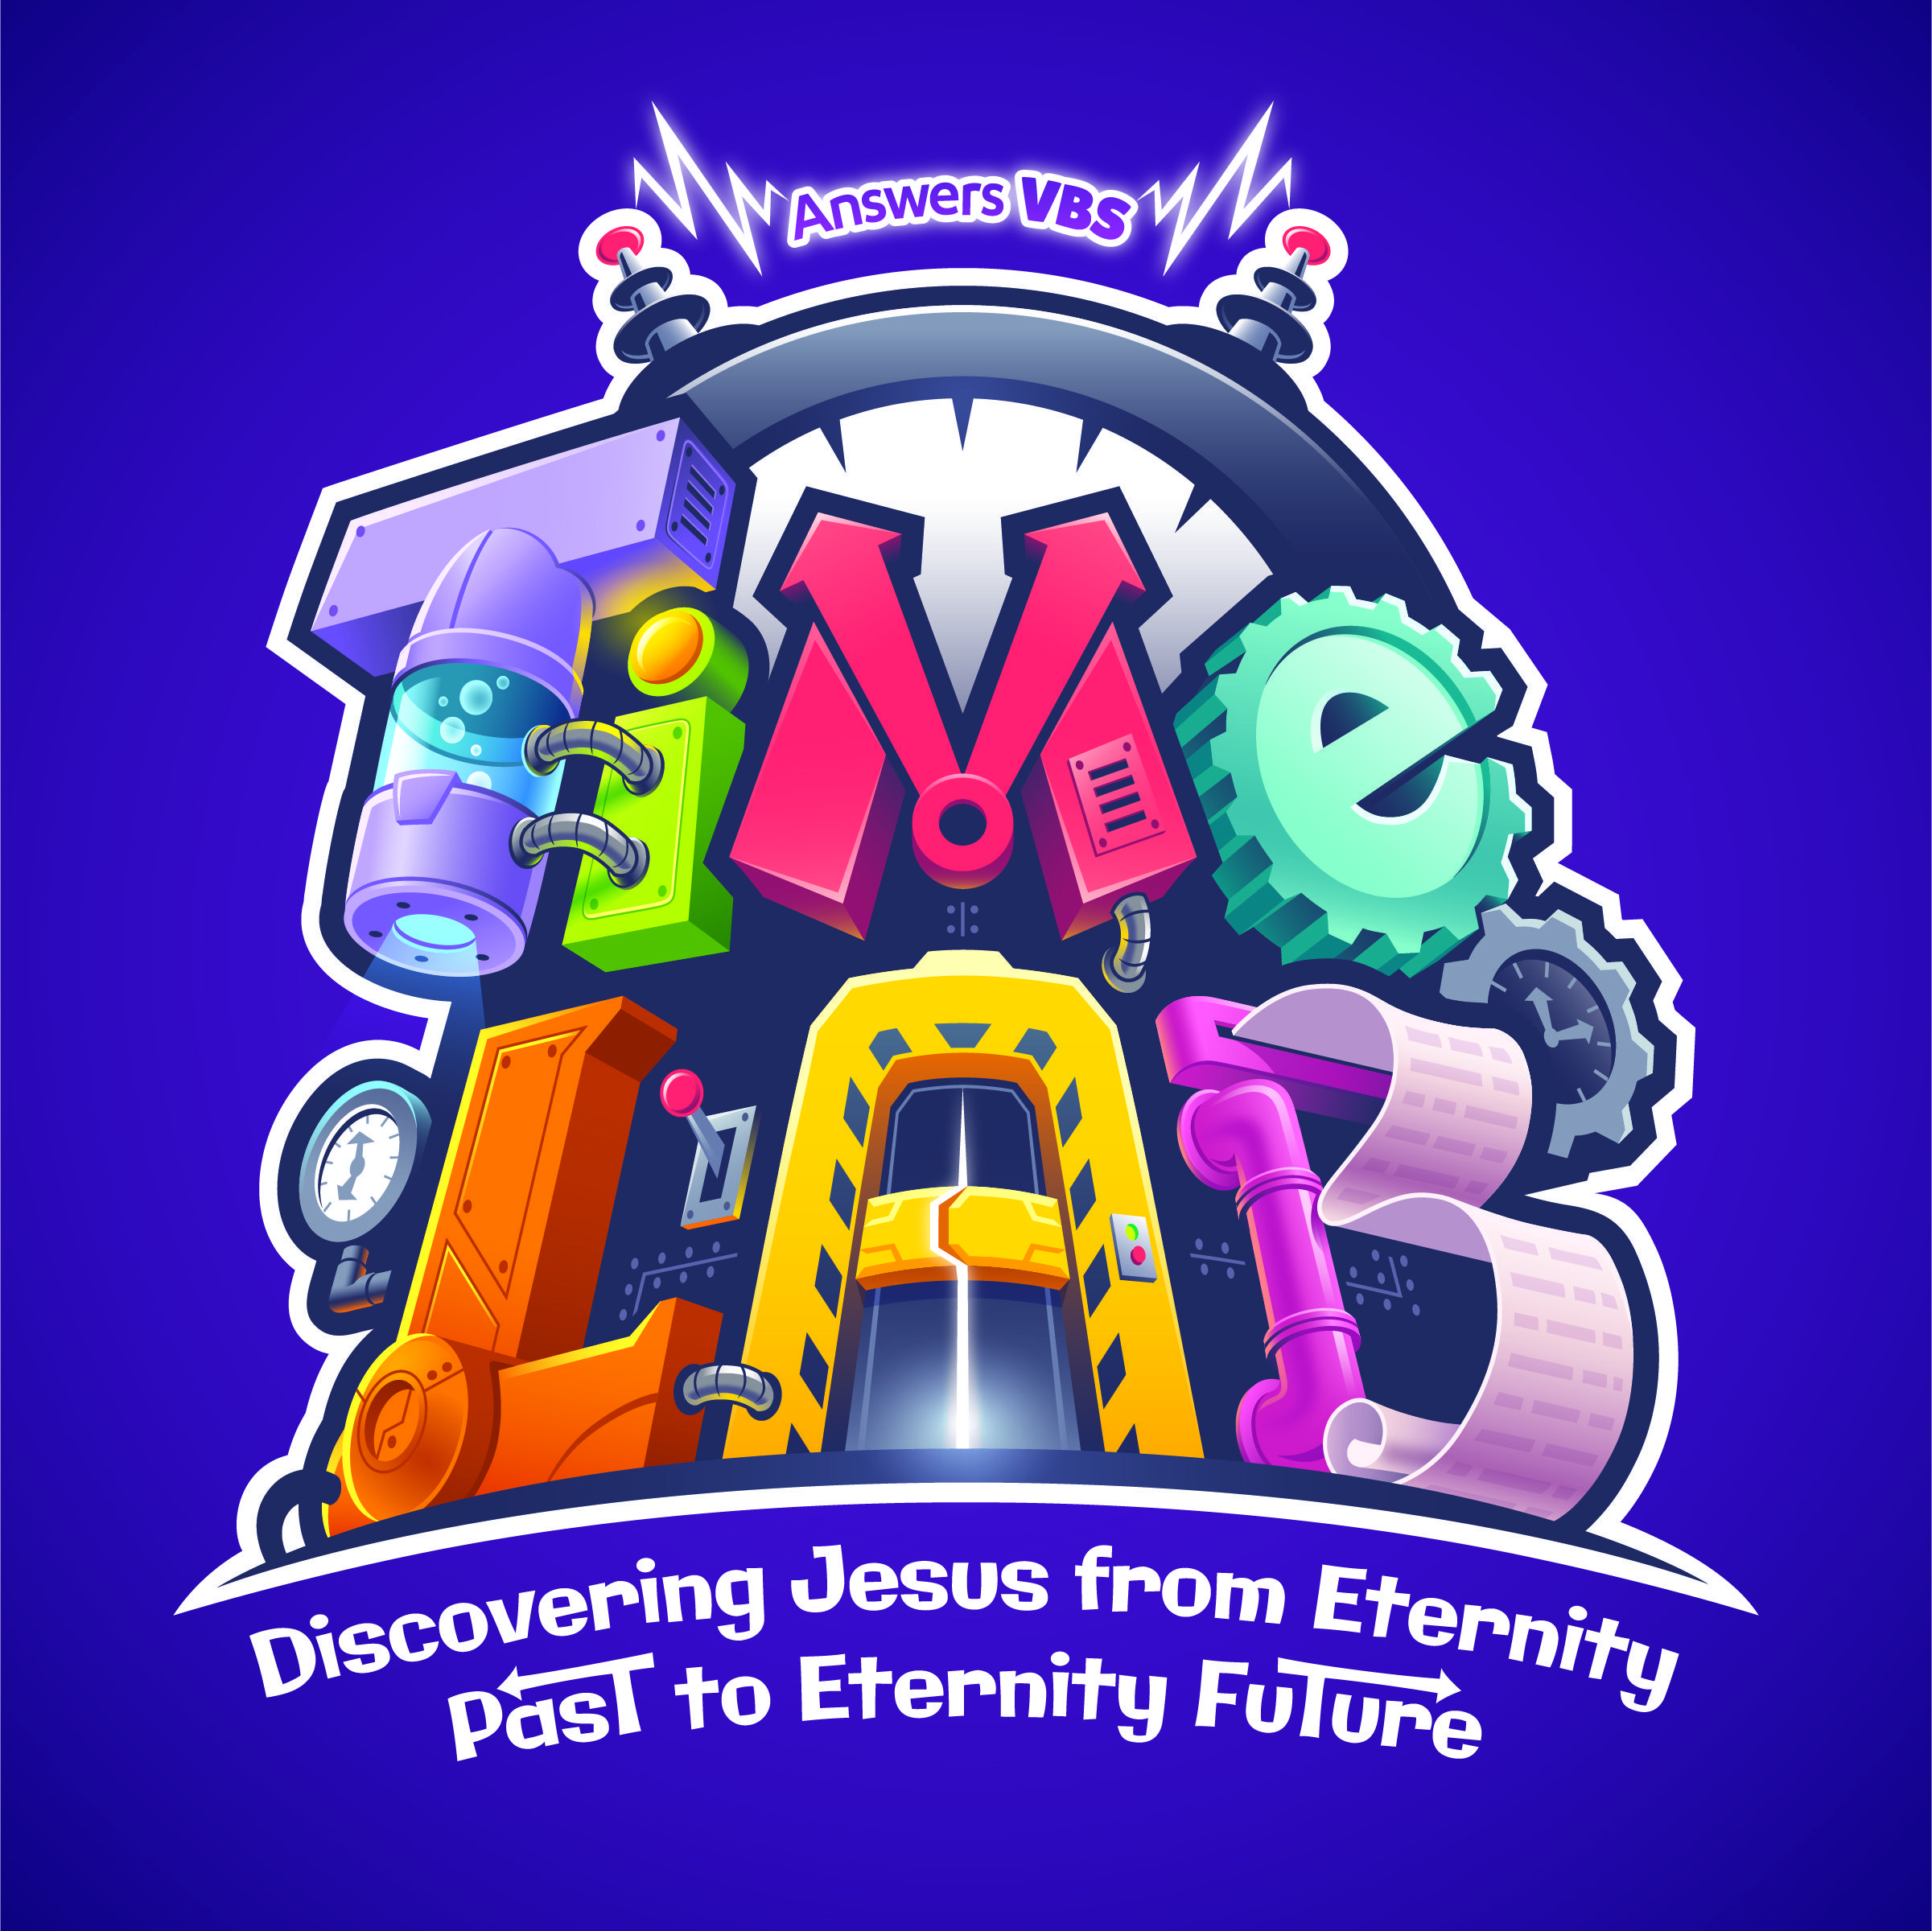 Time lab vacation bible school program for 2018 by answers vbs time lab vacation bible school program for 2018 from answers vbs answersvbs malvernweather Images